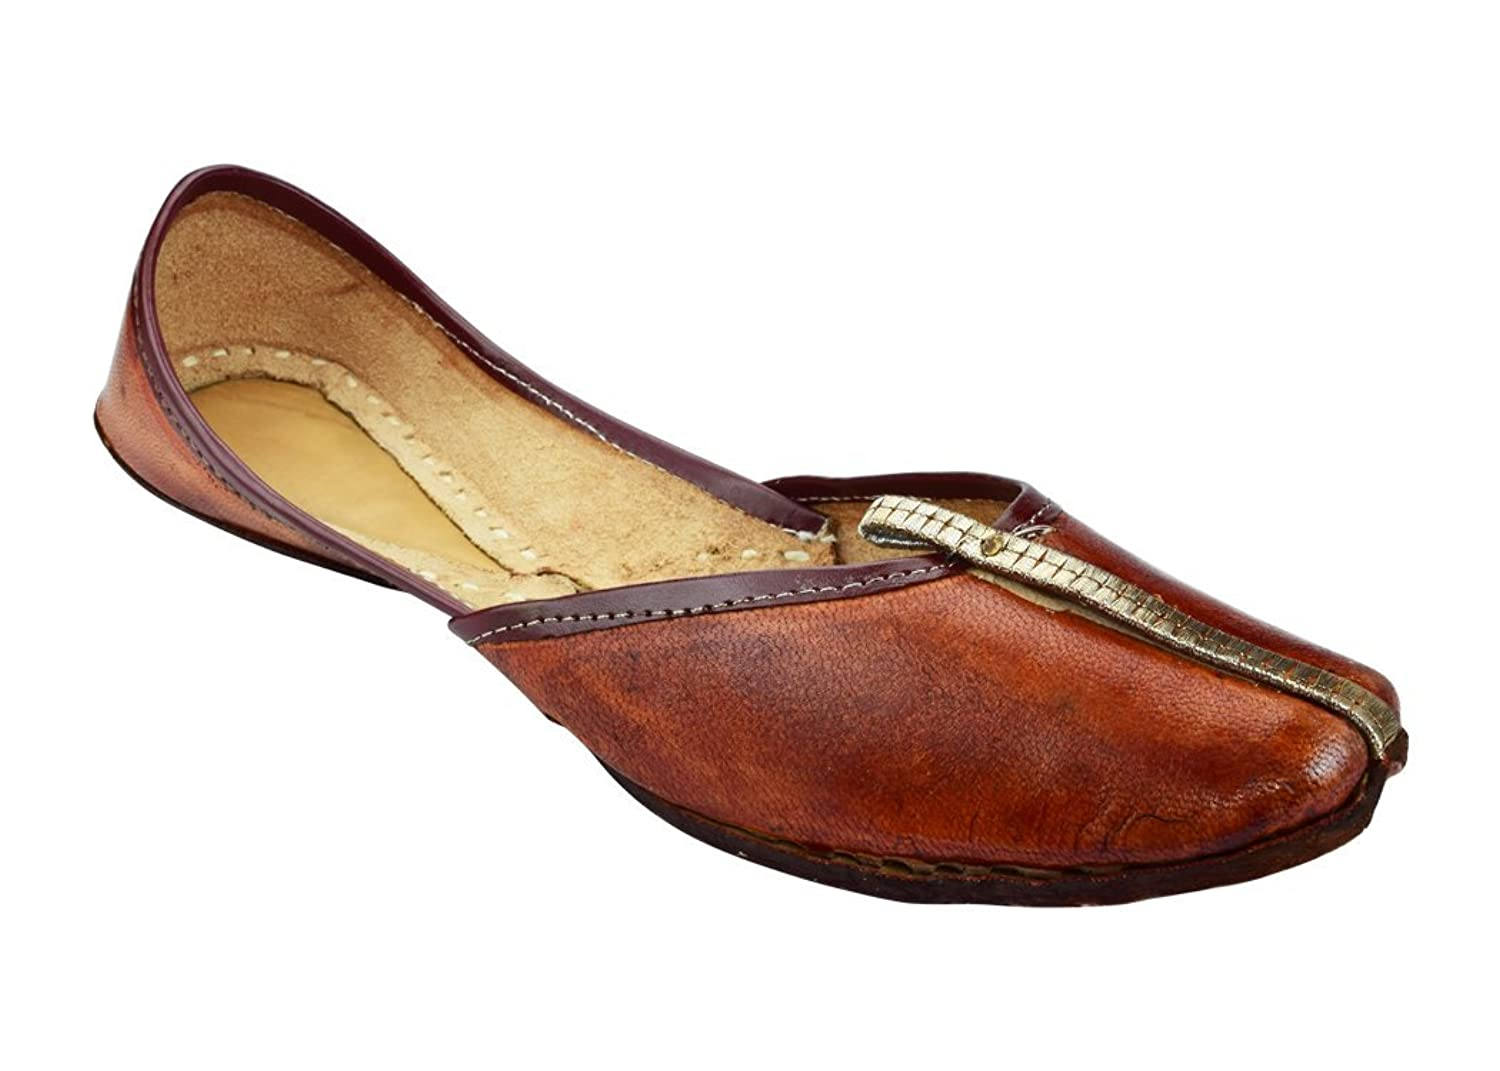 indianpartywears Women's Leather Loafer Flats US8 Brown